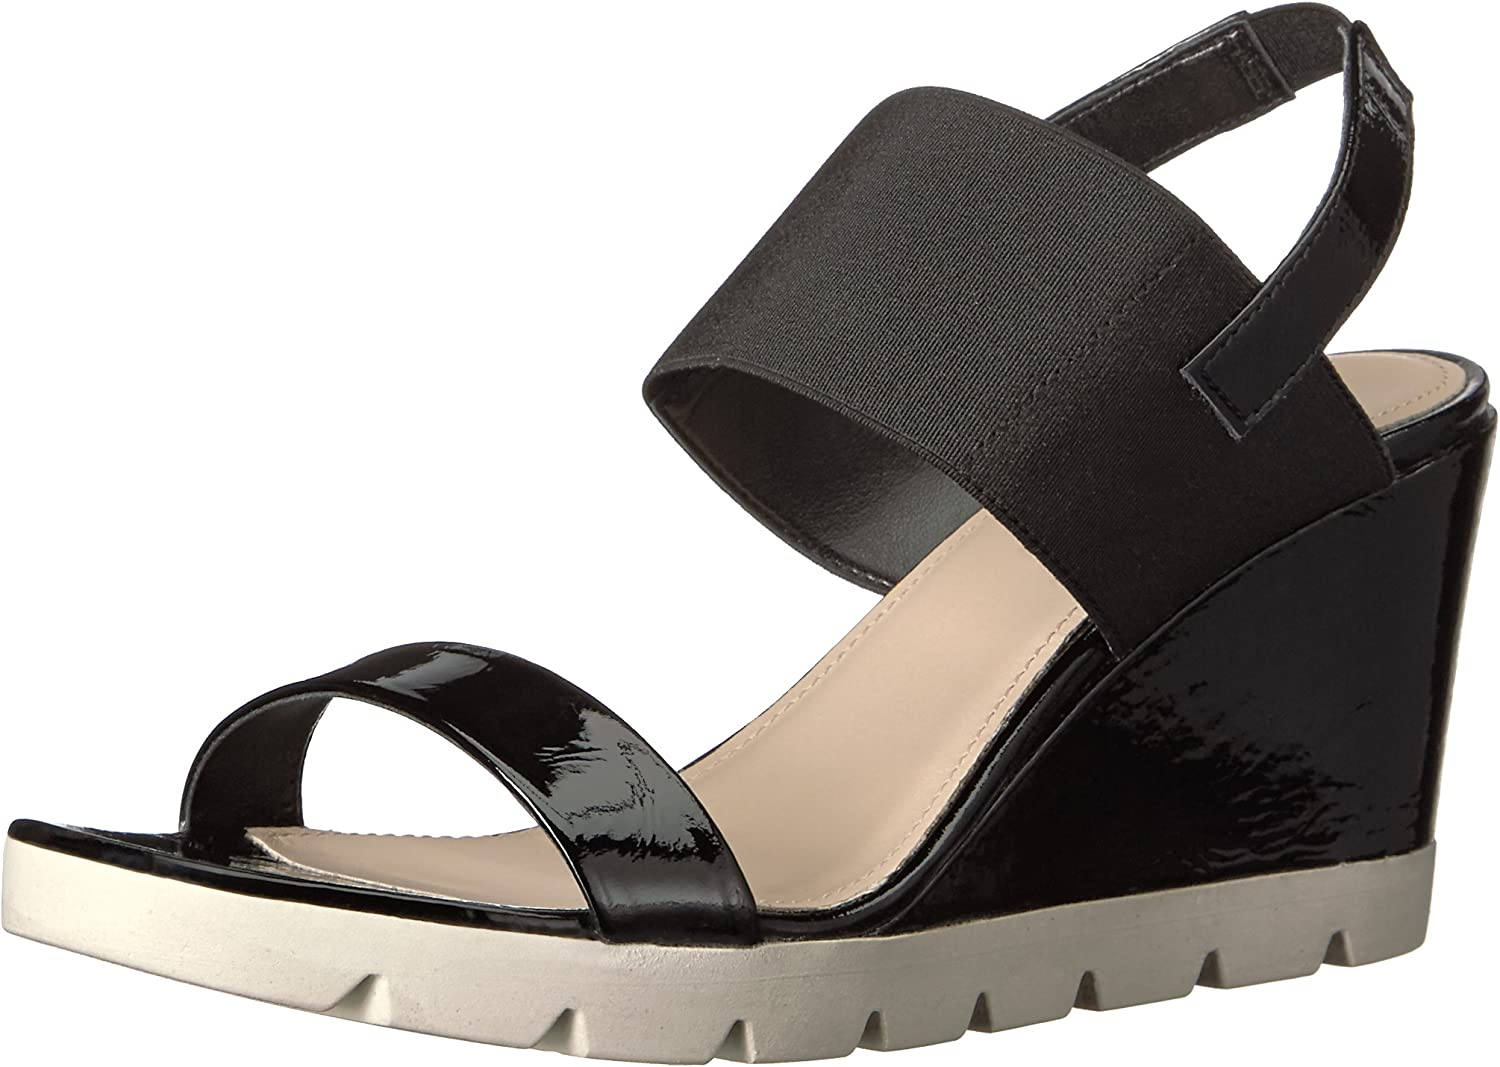 The Flexx Womens Give a Lot Wedge Sandal